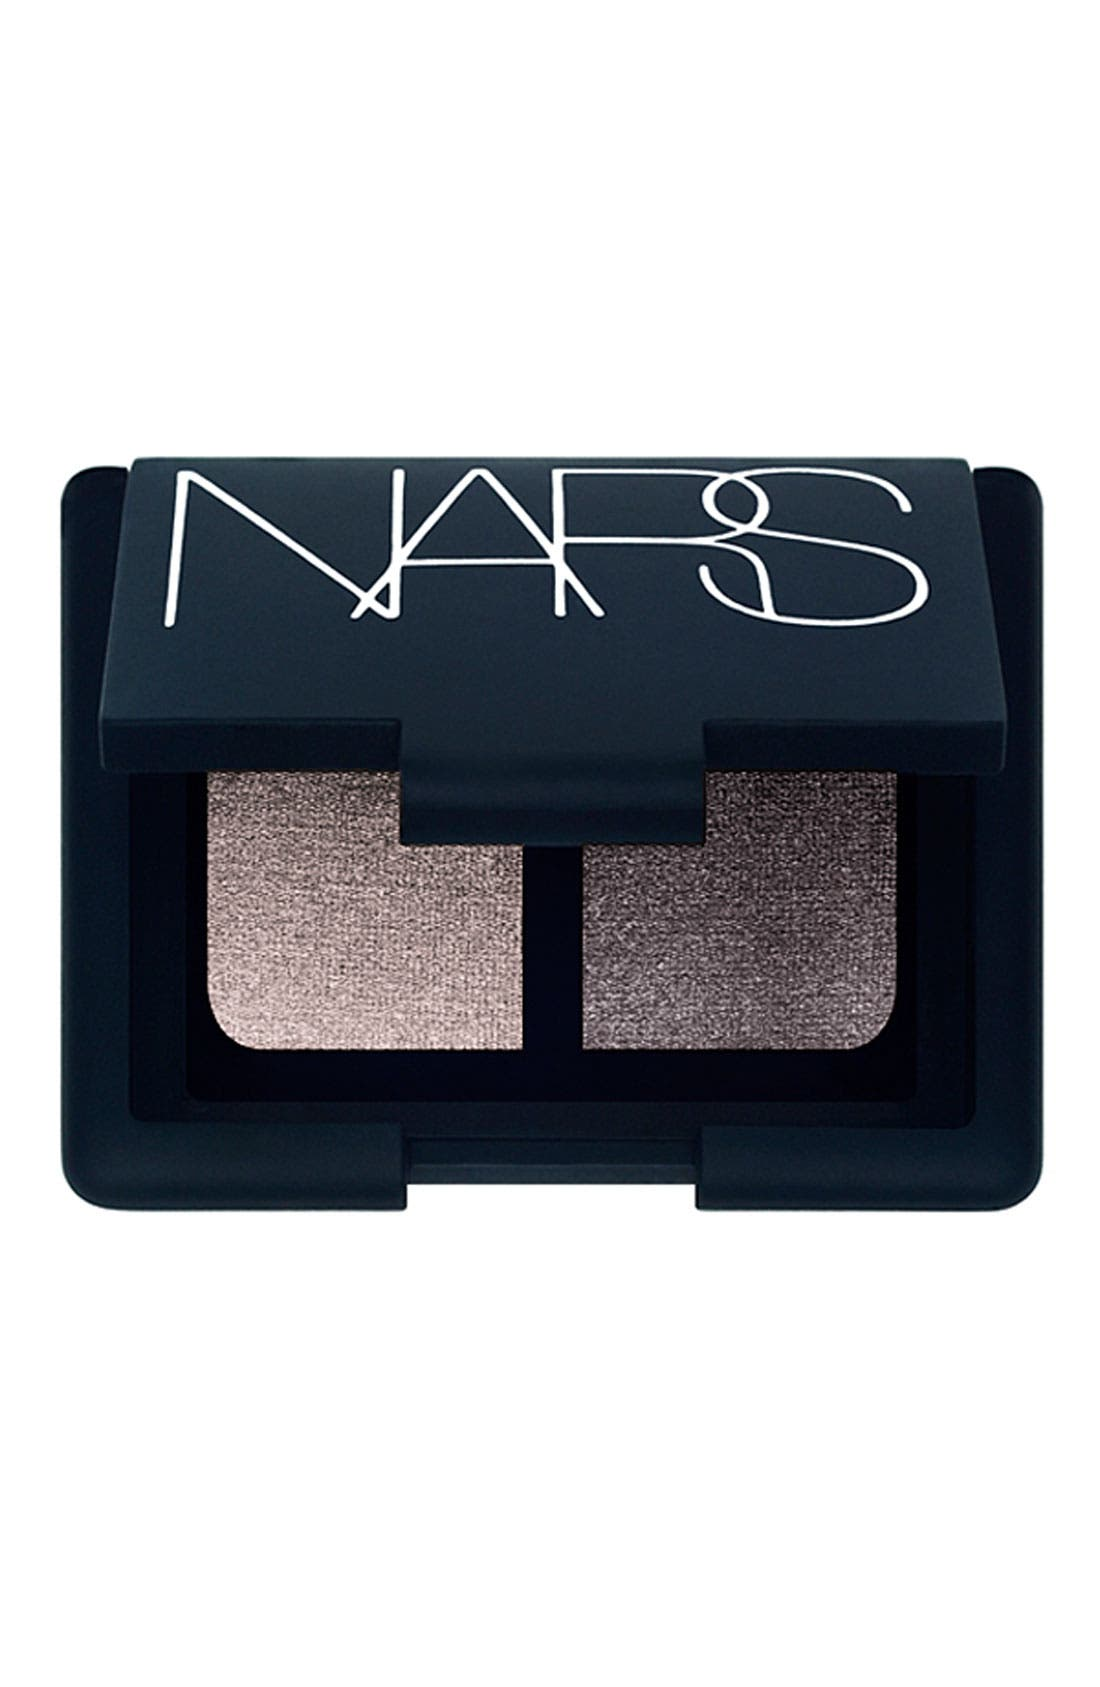 Duo Eyeshadow,                             Main thumbnail 1, color,                             001